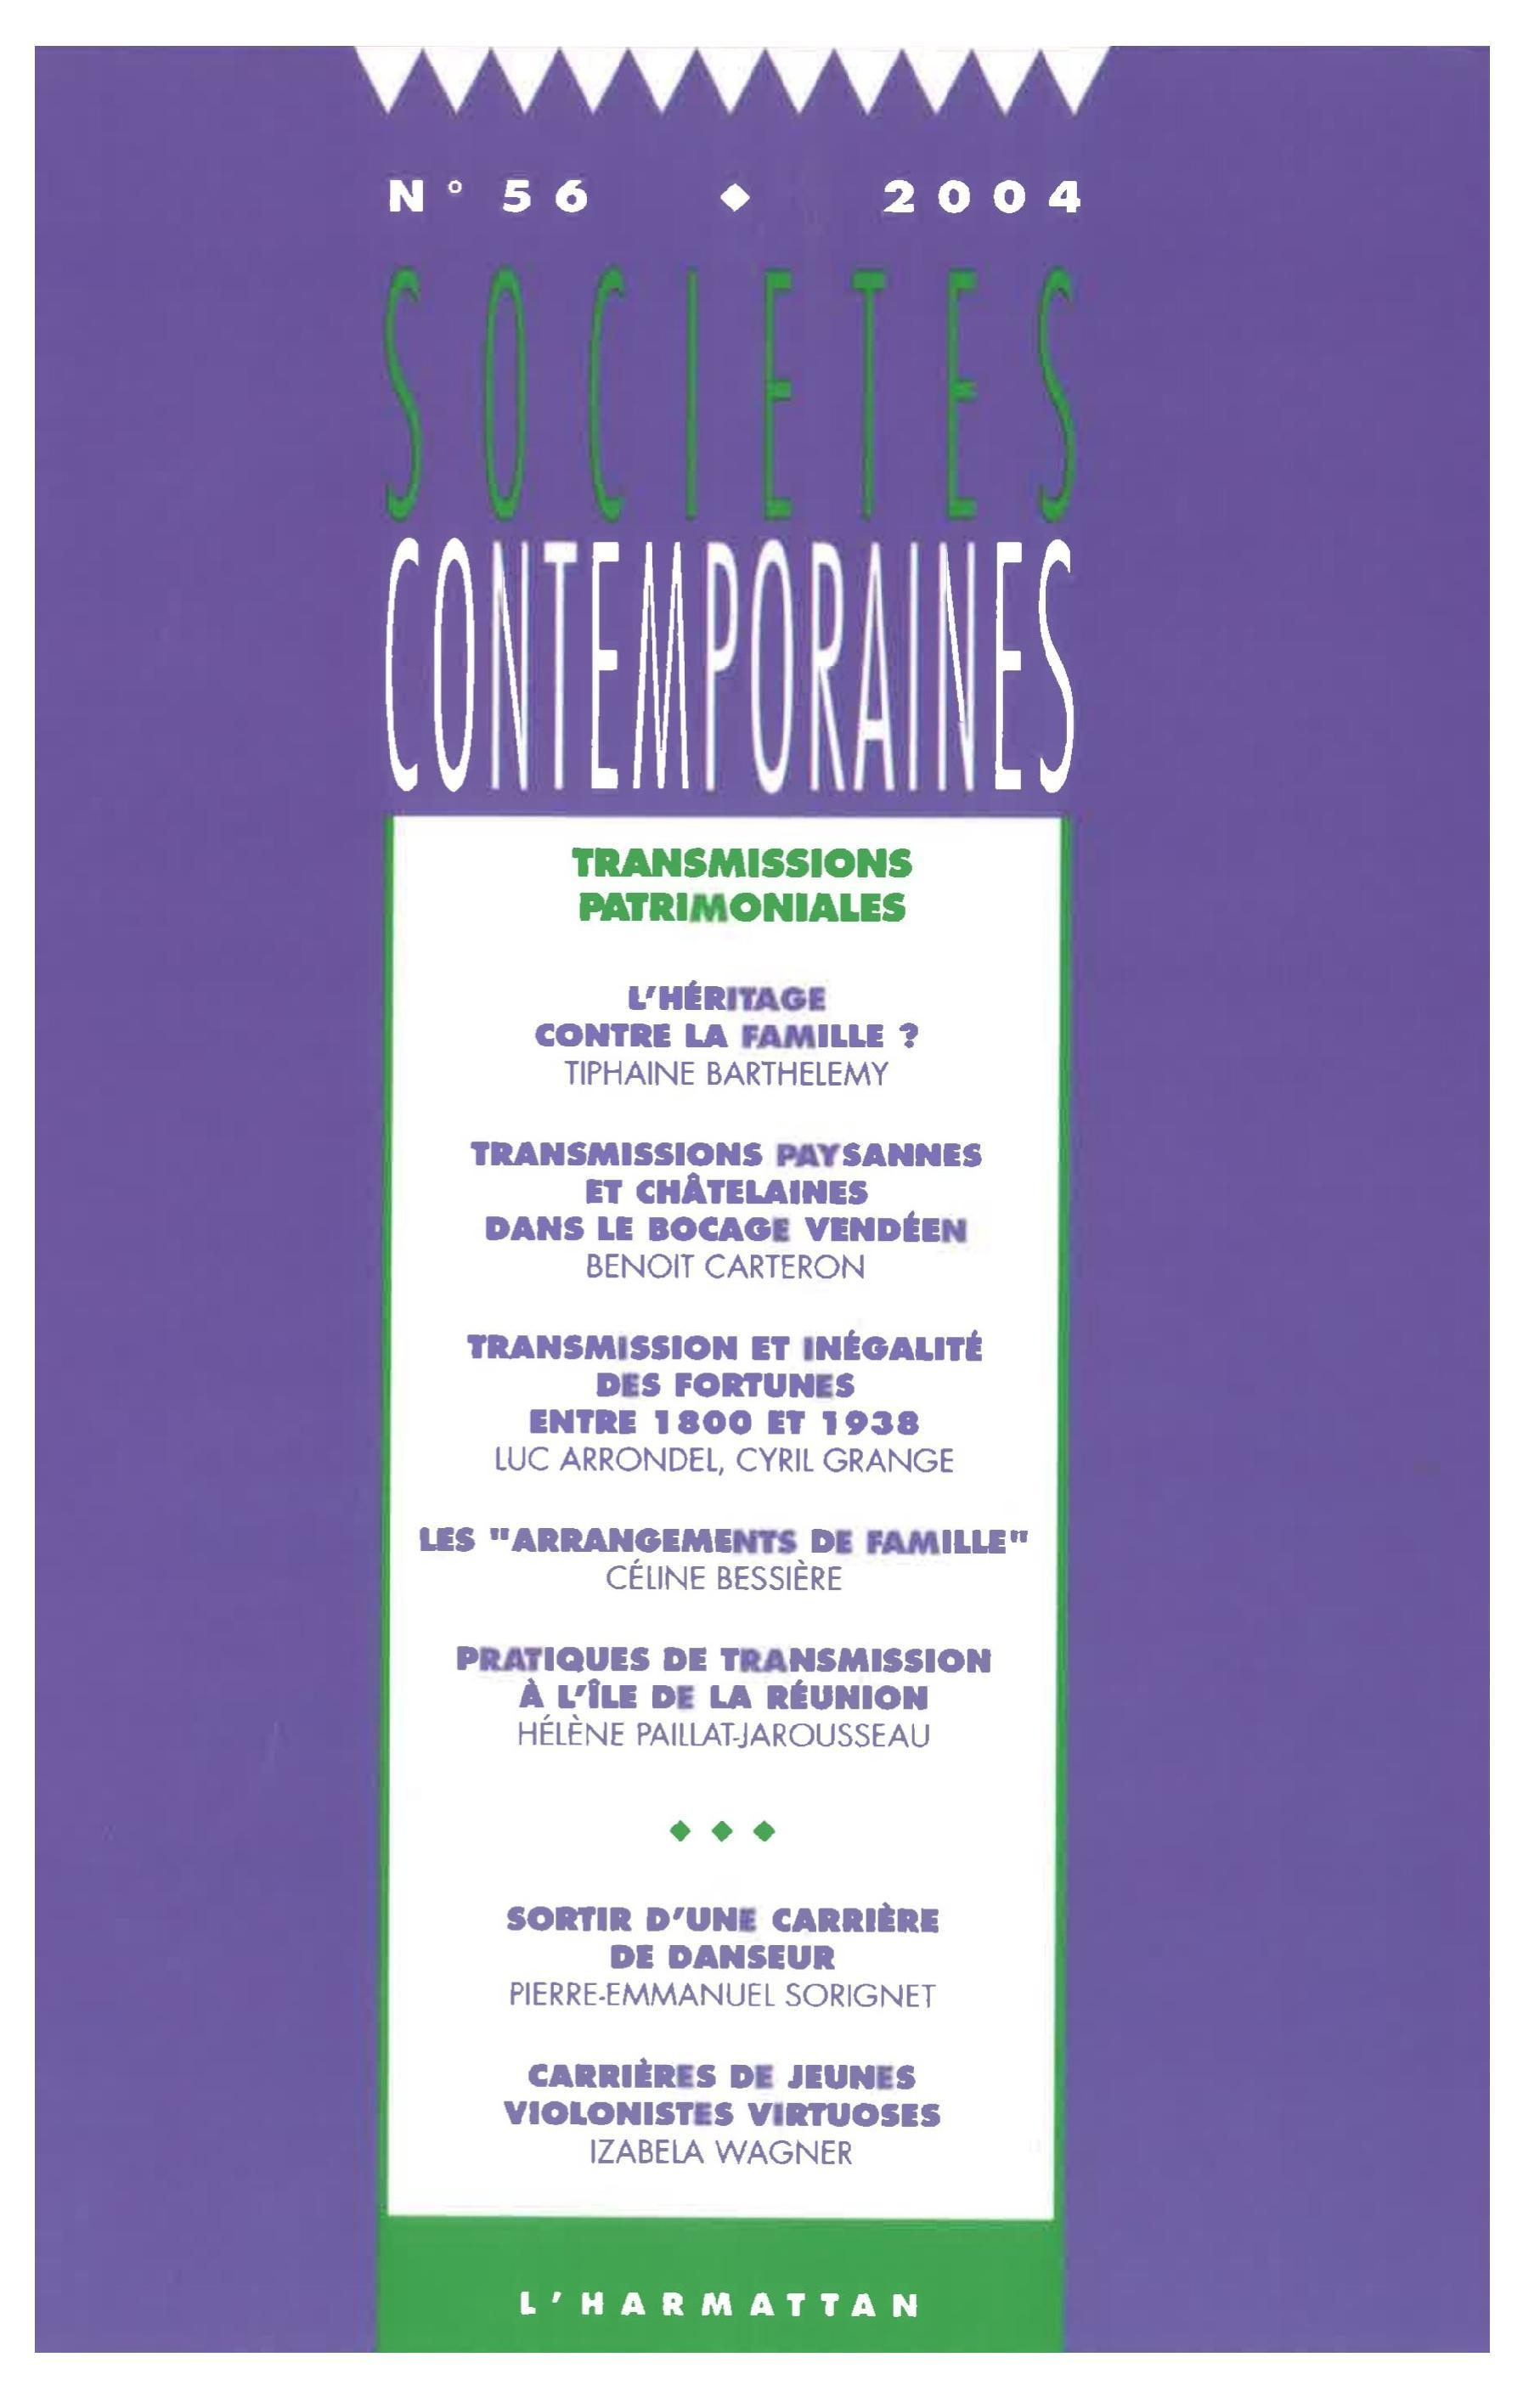 Transmissions patrimoniales